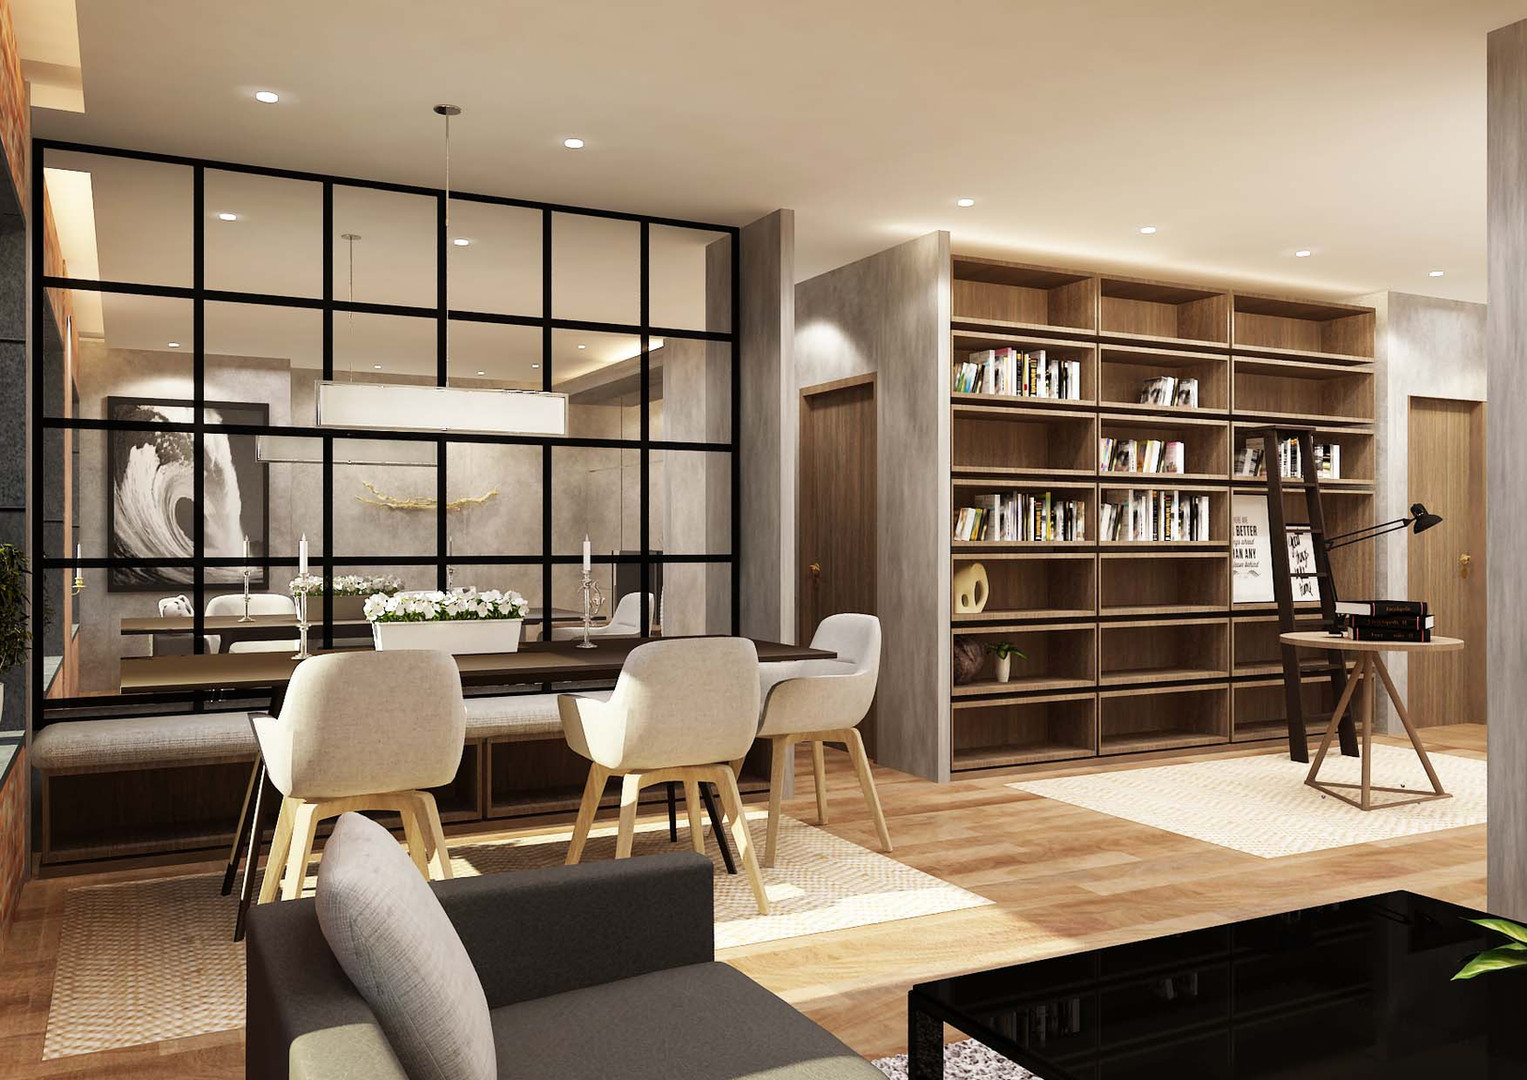 Dining and Library